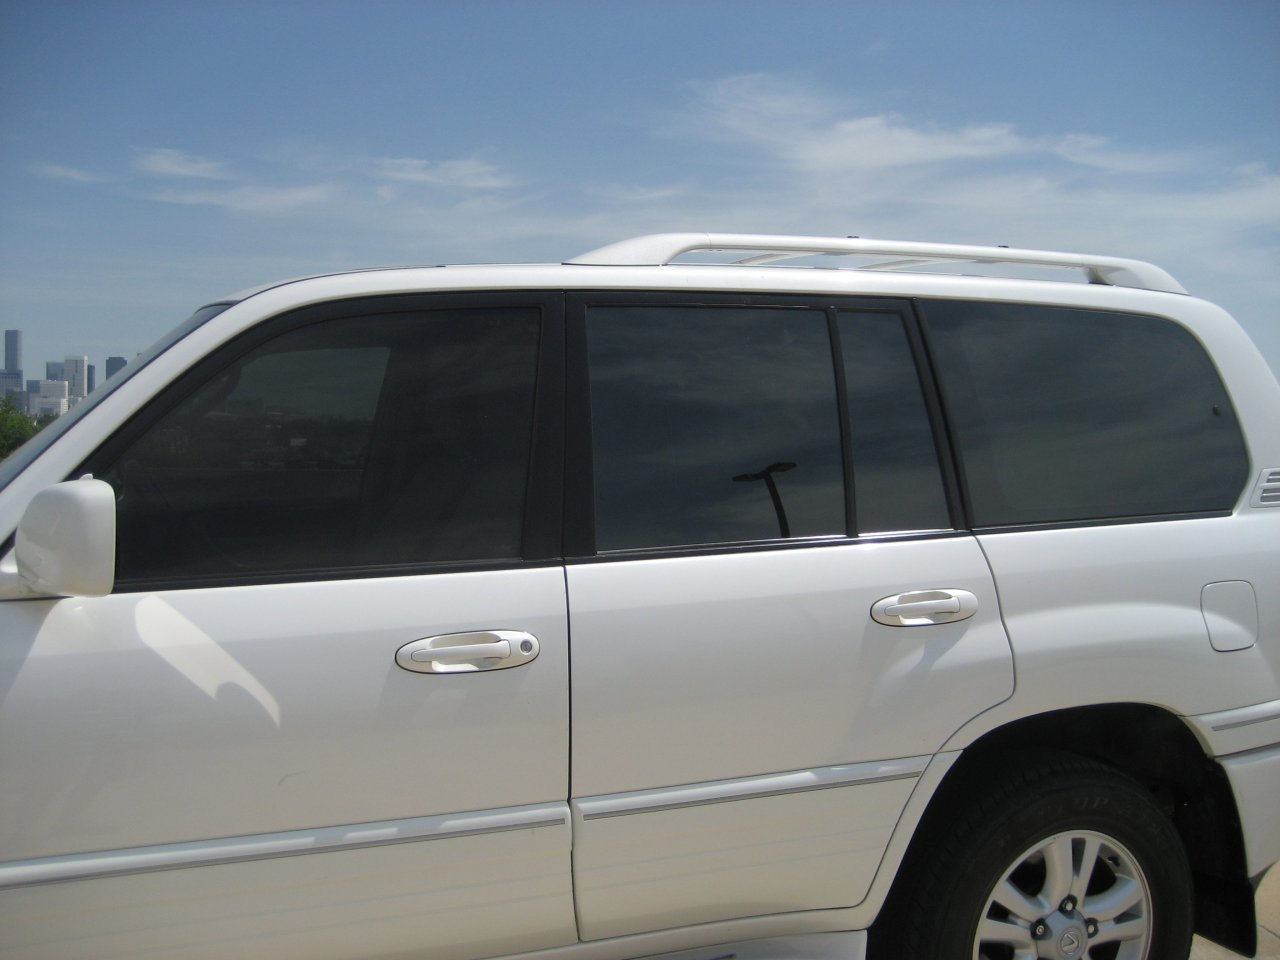 Looking for pics of a 100 with 20 tint on front and 5 for 20 window tint at night